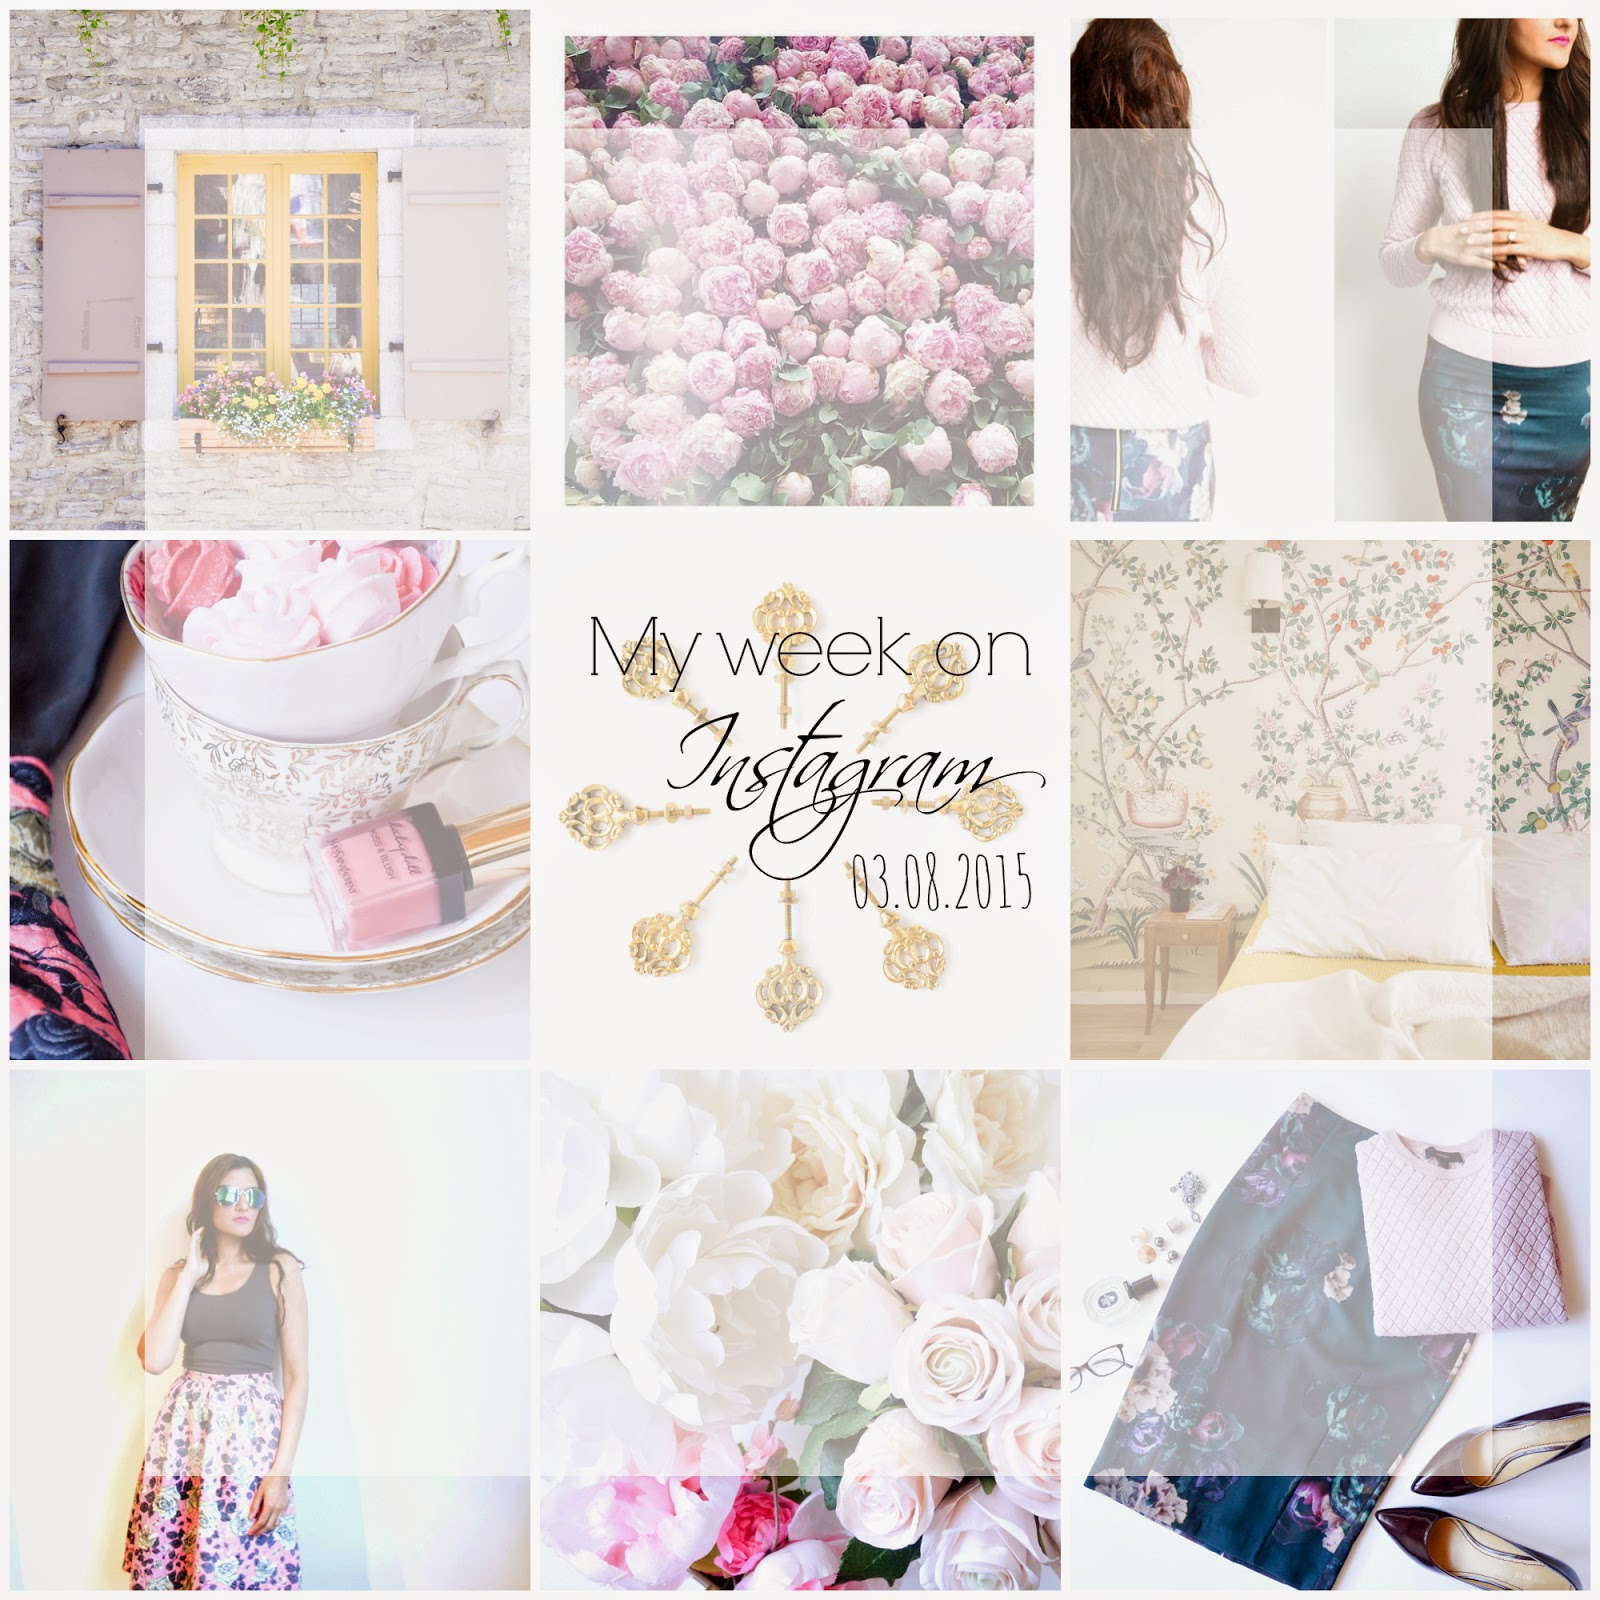 @Navkbrarblog My week on Instagram 03.08.2015